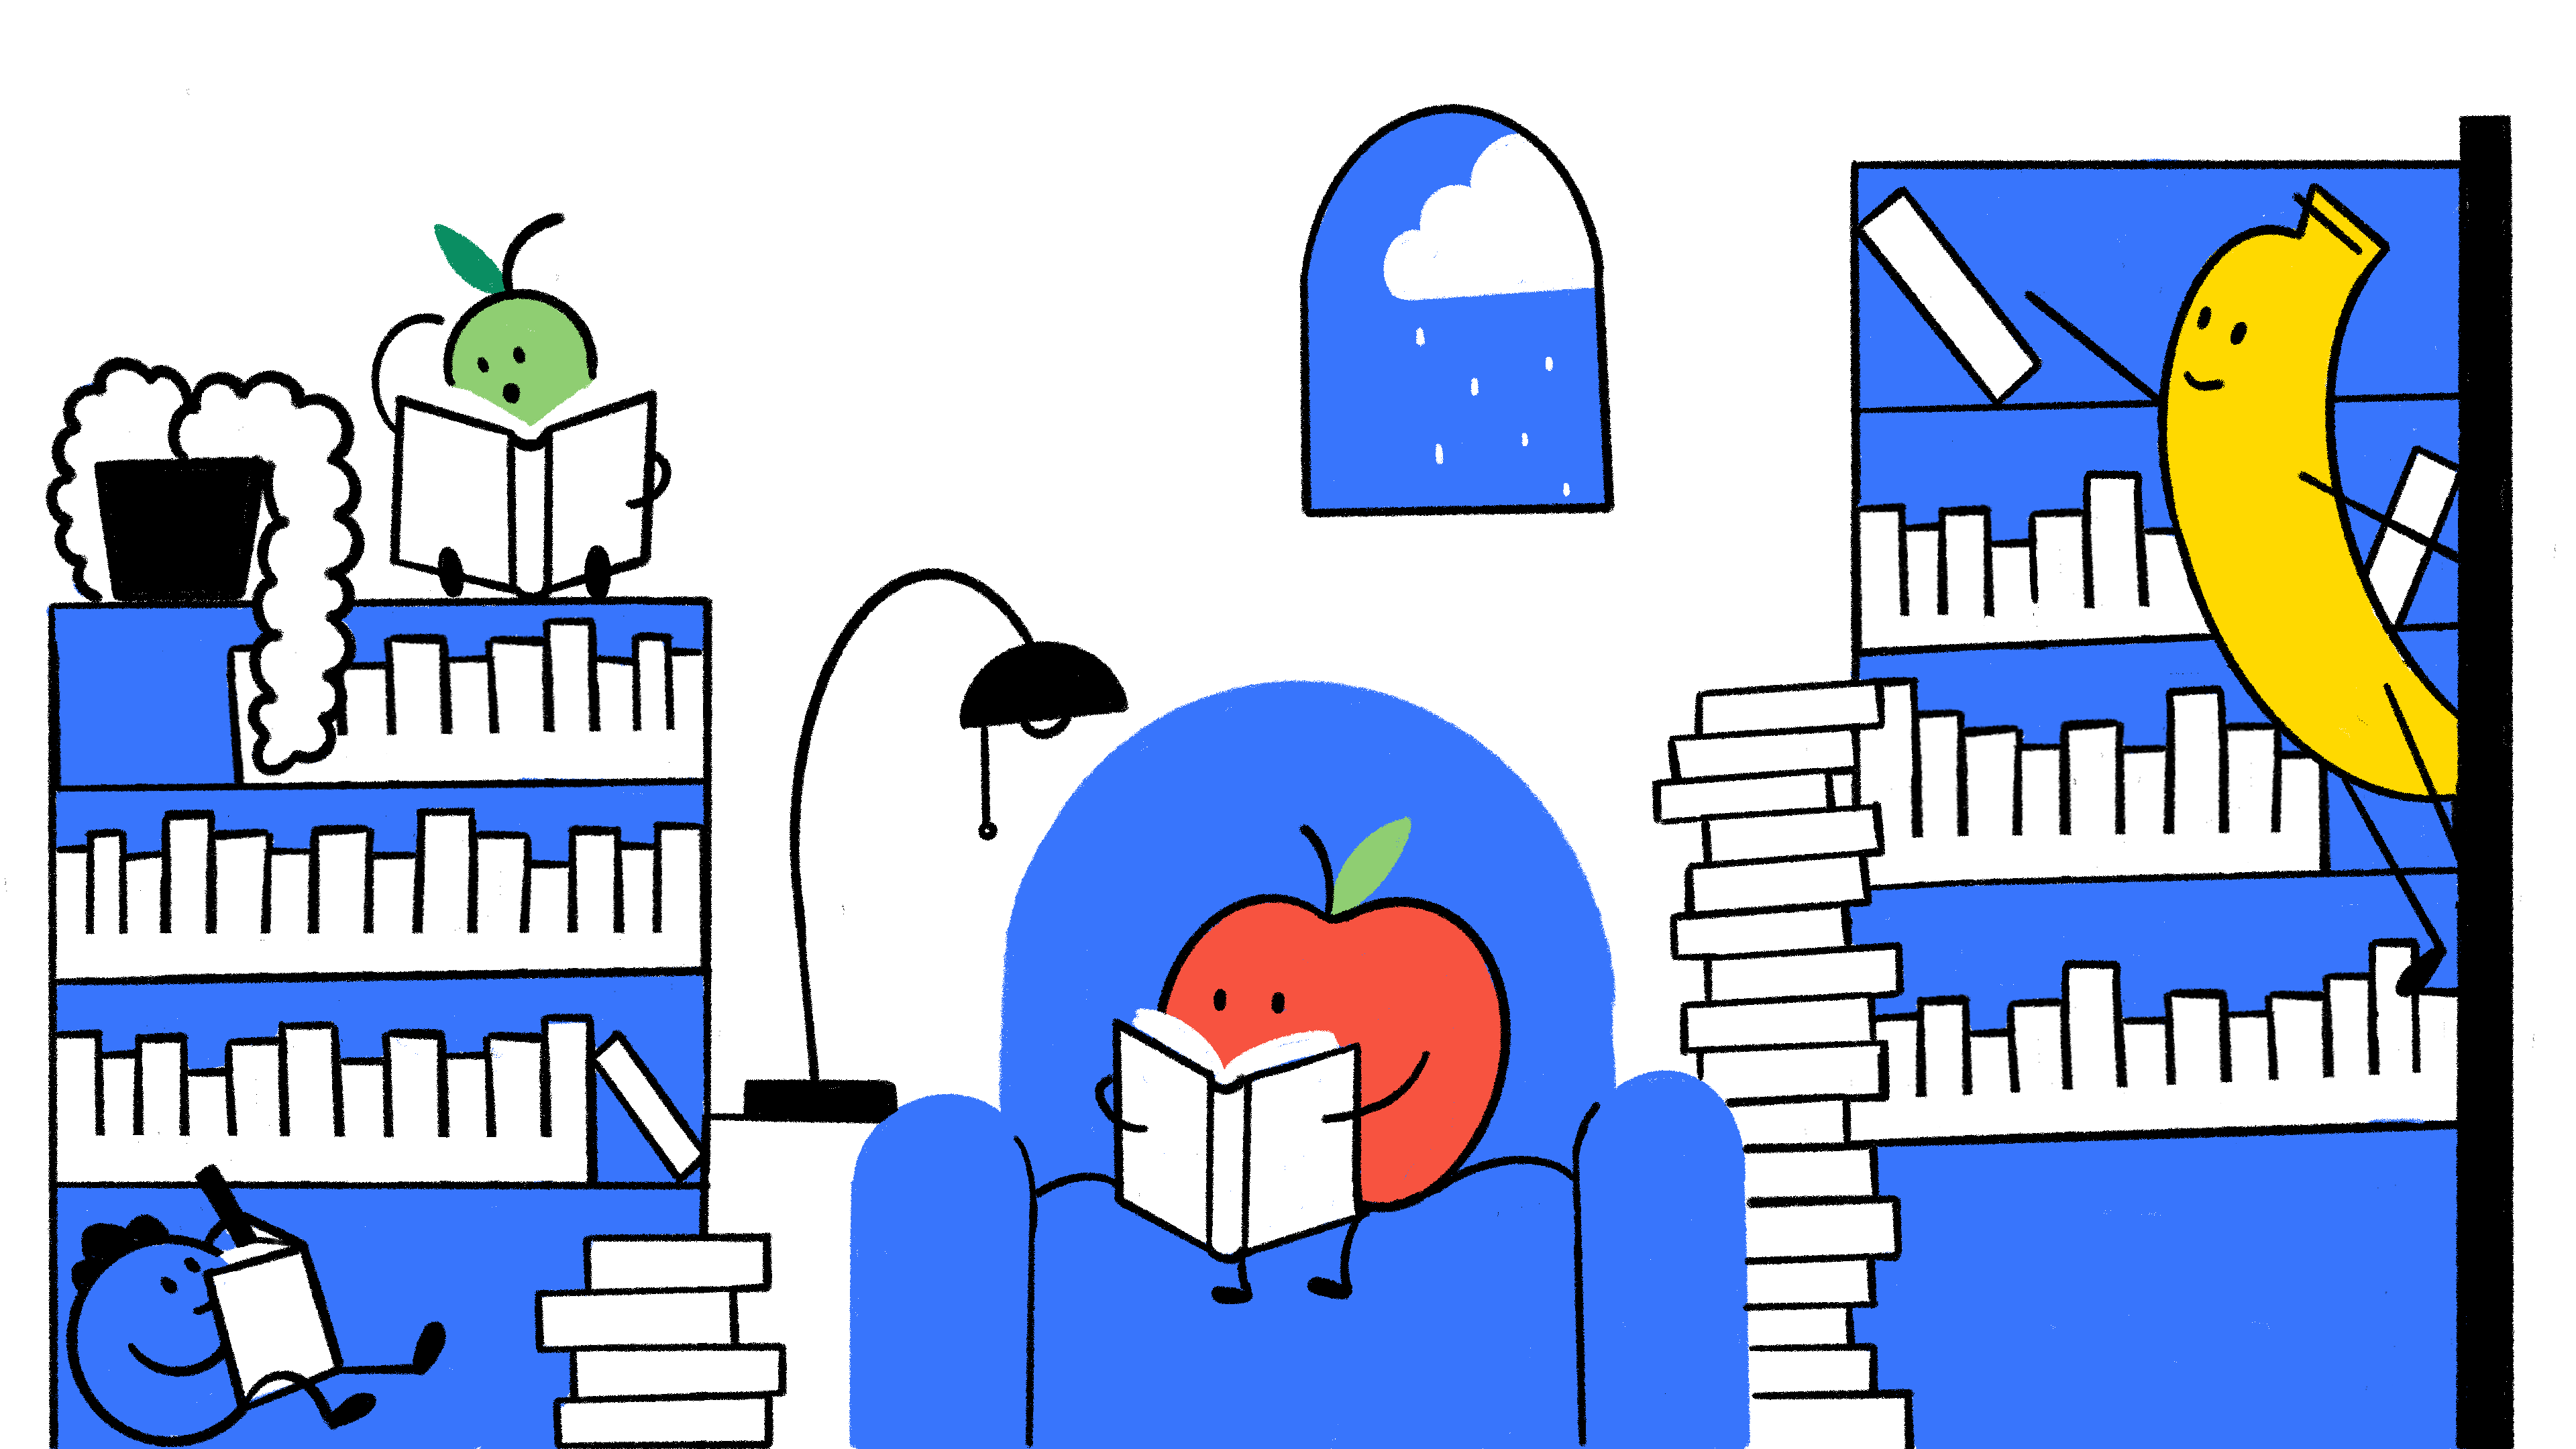 Apple is reading on the couch while Banana is looking for a book and Blueberry and Pear are reading in various places